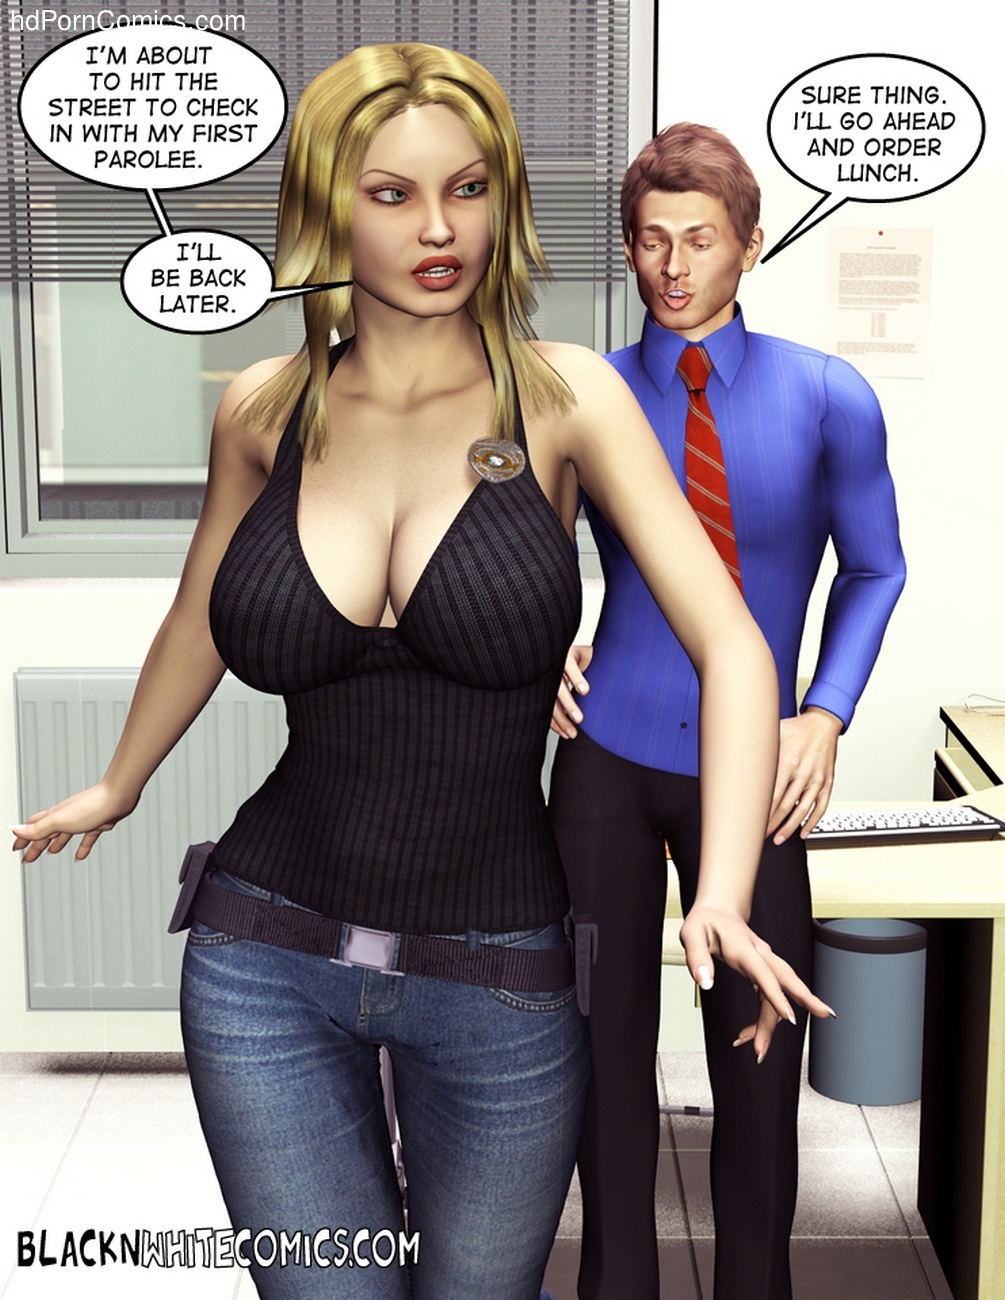 The Parole Officer 9 free sex comic